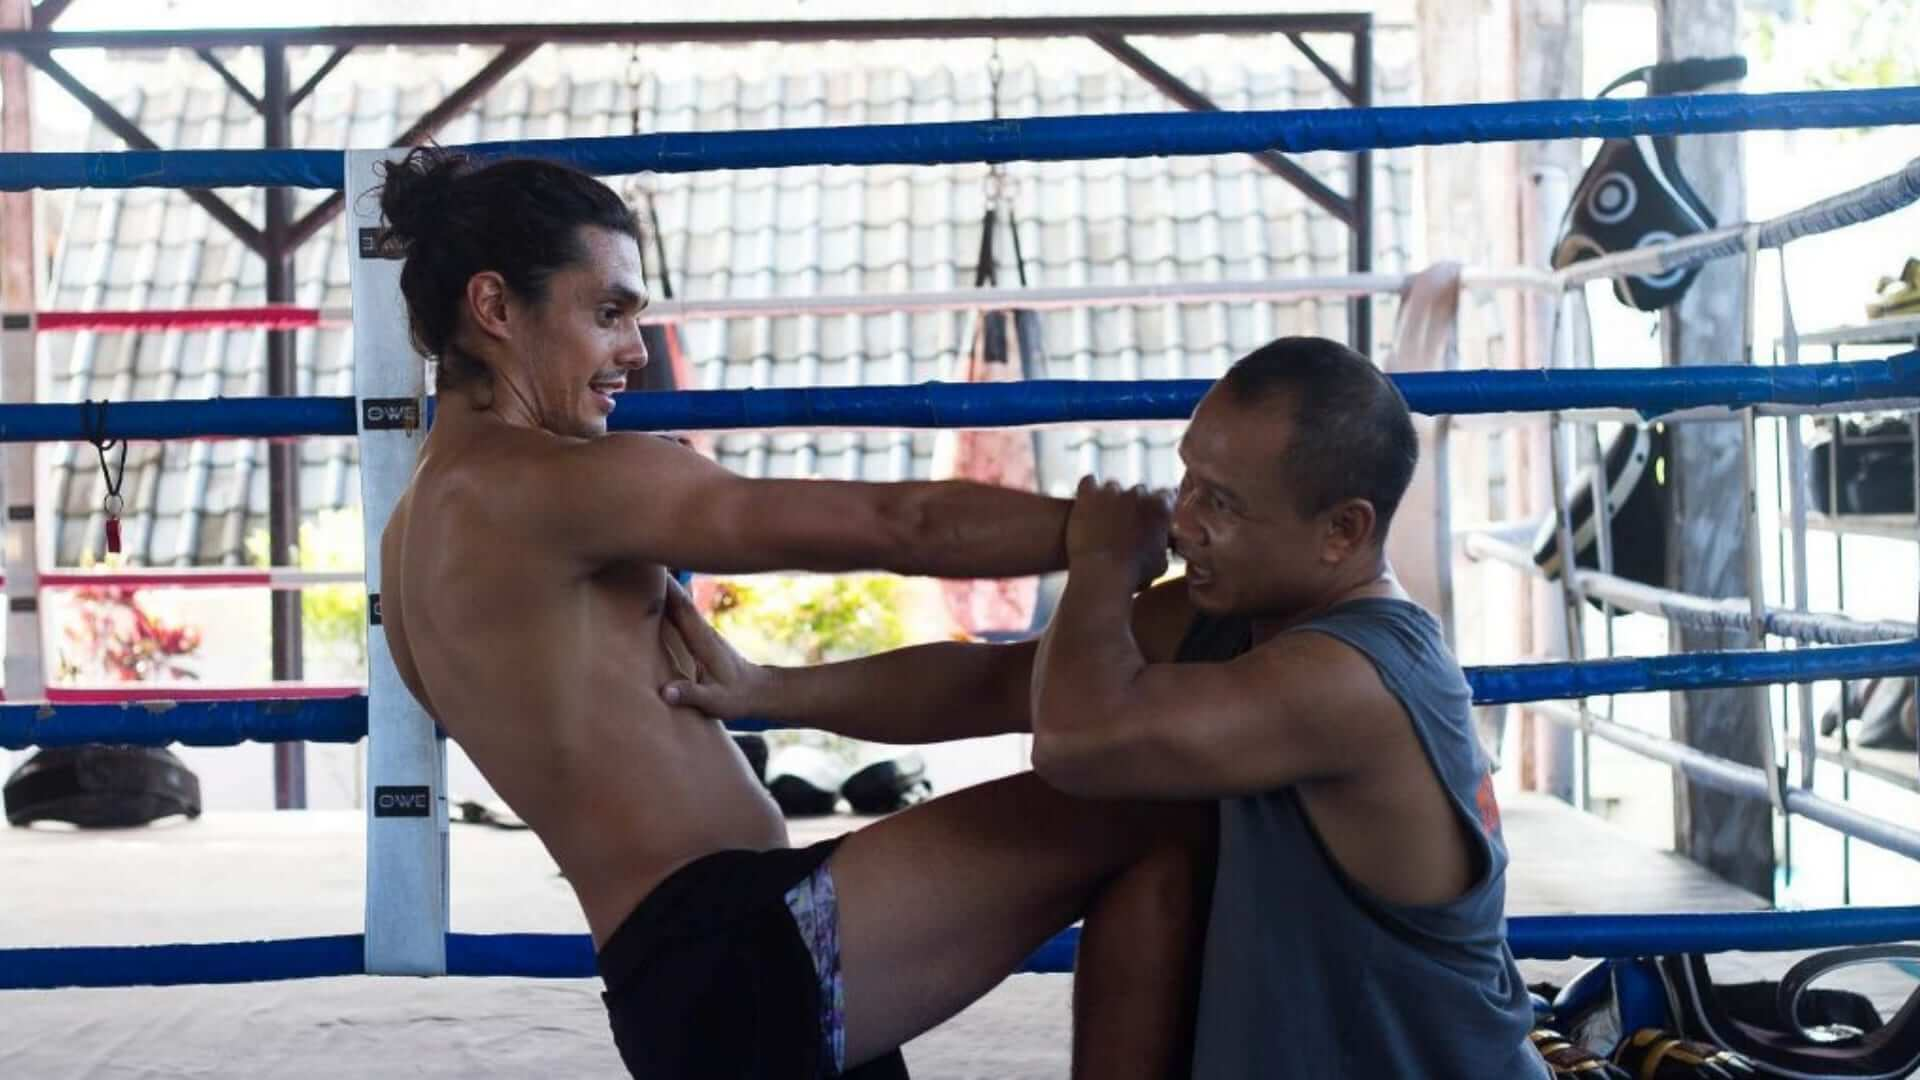 A man is kicking another man during Muay Thai in Thailand.